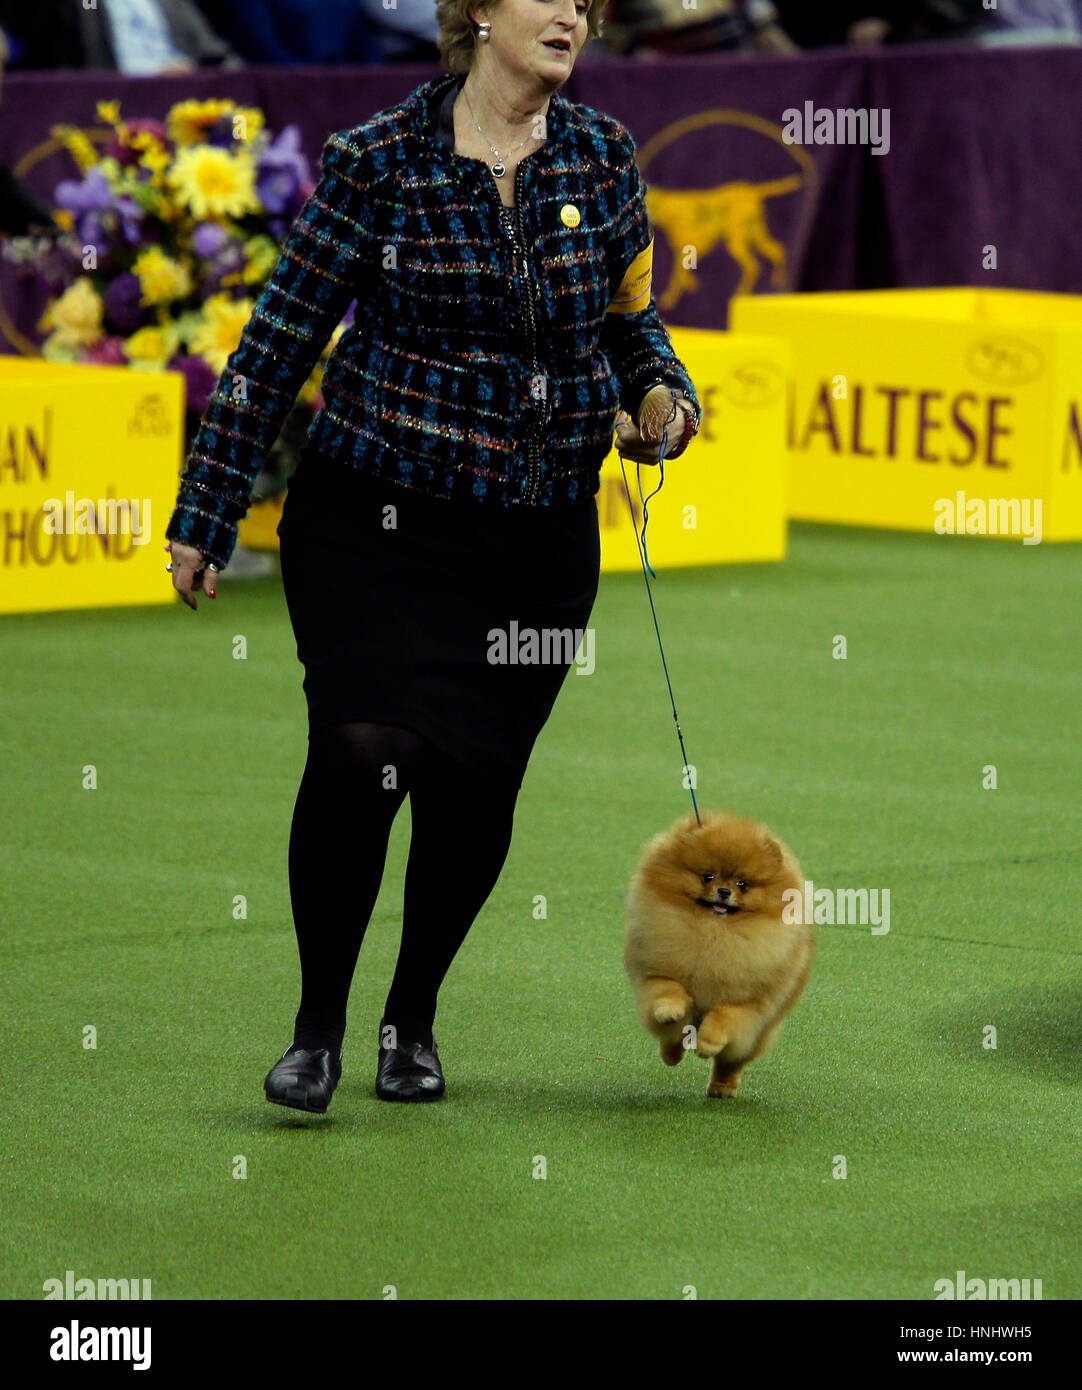 New York City, 13th February 2017. 'Max', a Pomeranian competing in the Toy Division at the 141st Annual - Stock Image